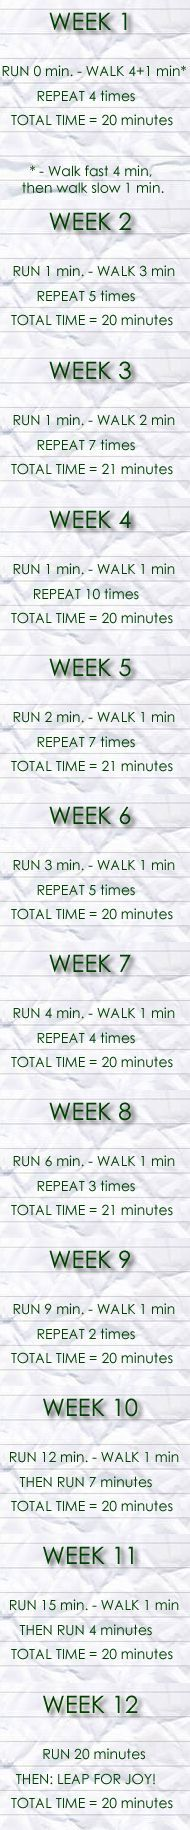 Running Training for Beginners...although I'm on week 8ish....this is still a wonderful way to get back into it if you haven't ran for a while